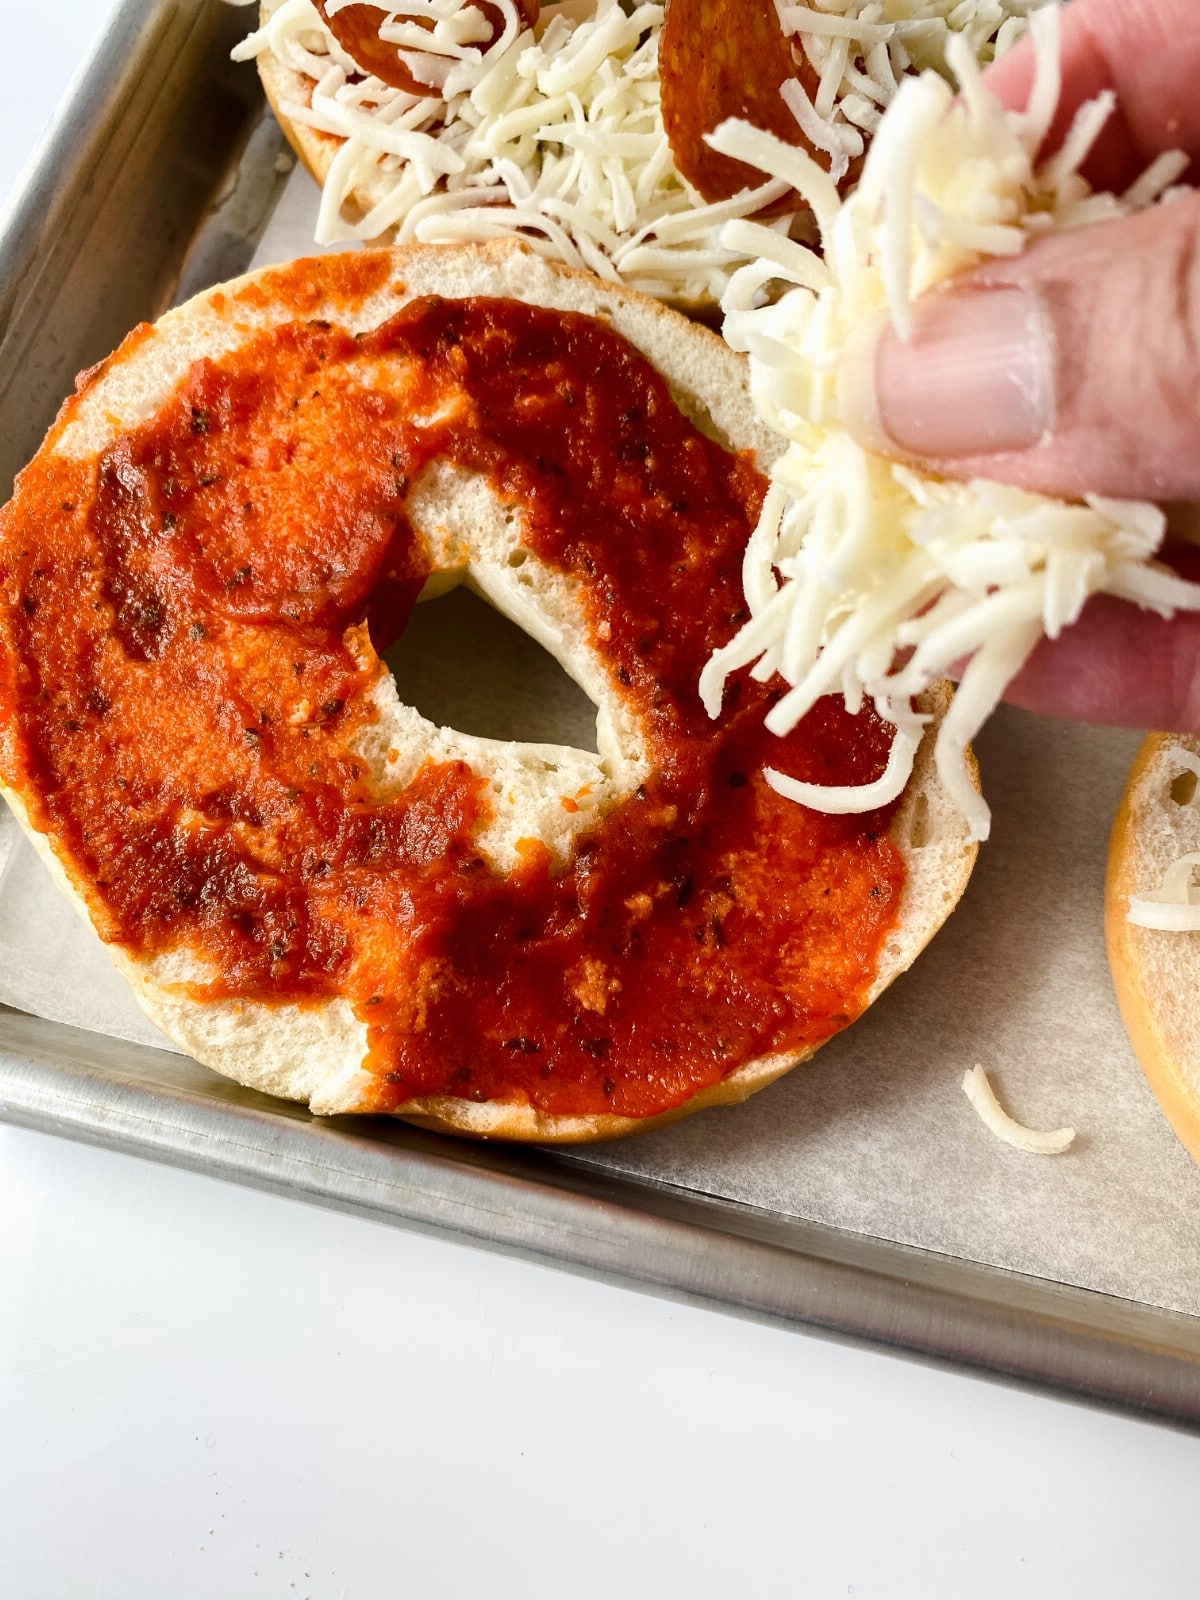 Adding cheese to bagel